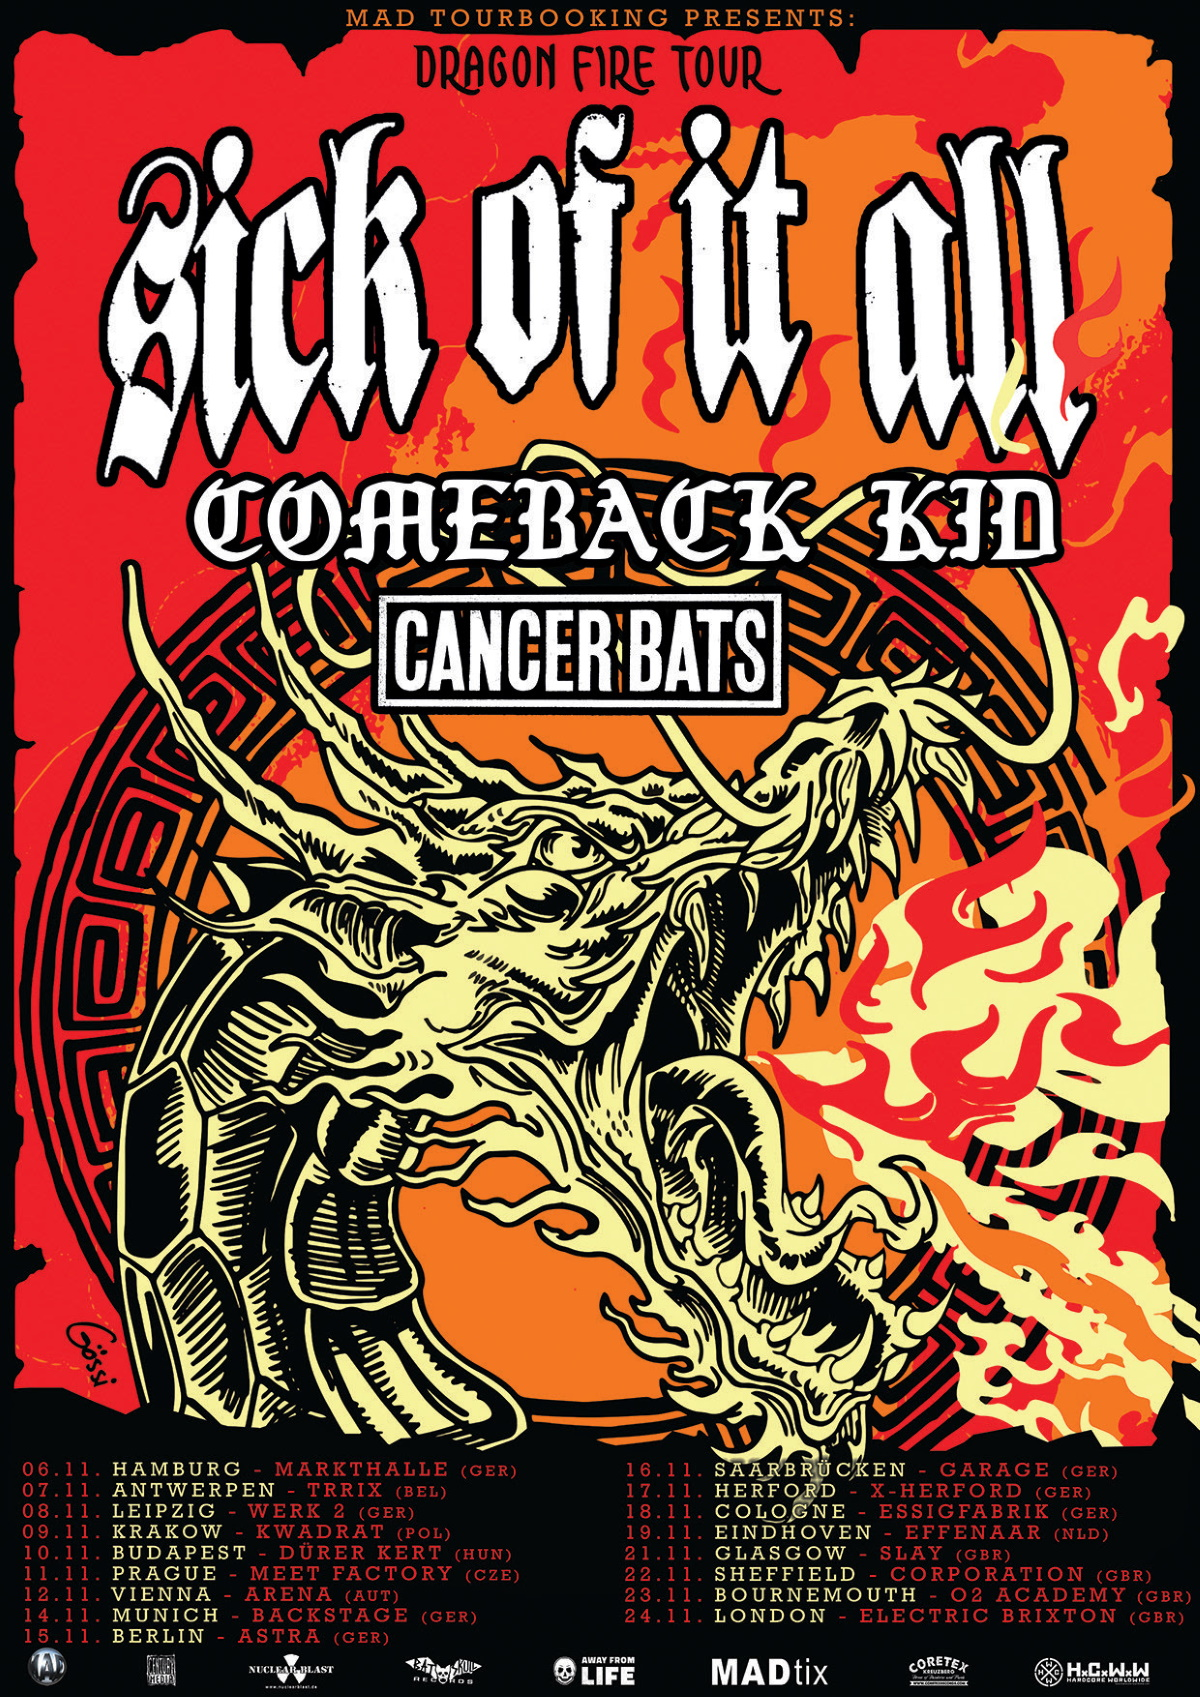 COMEBACK KID poster updated